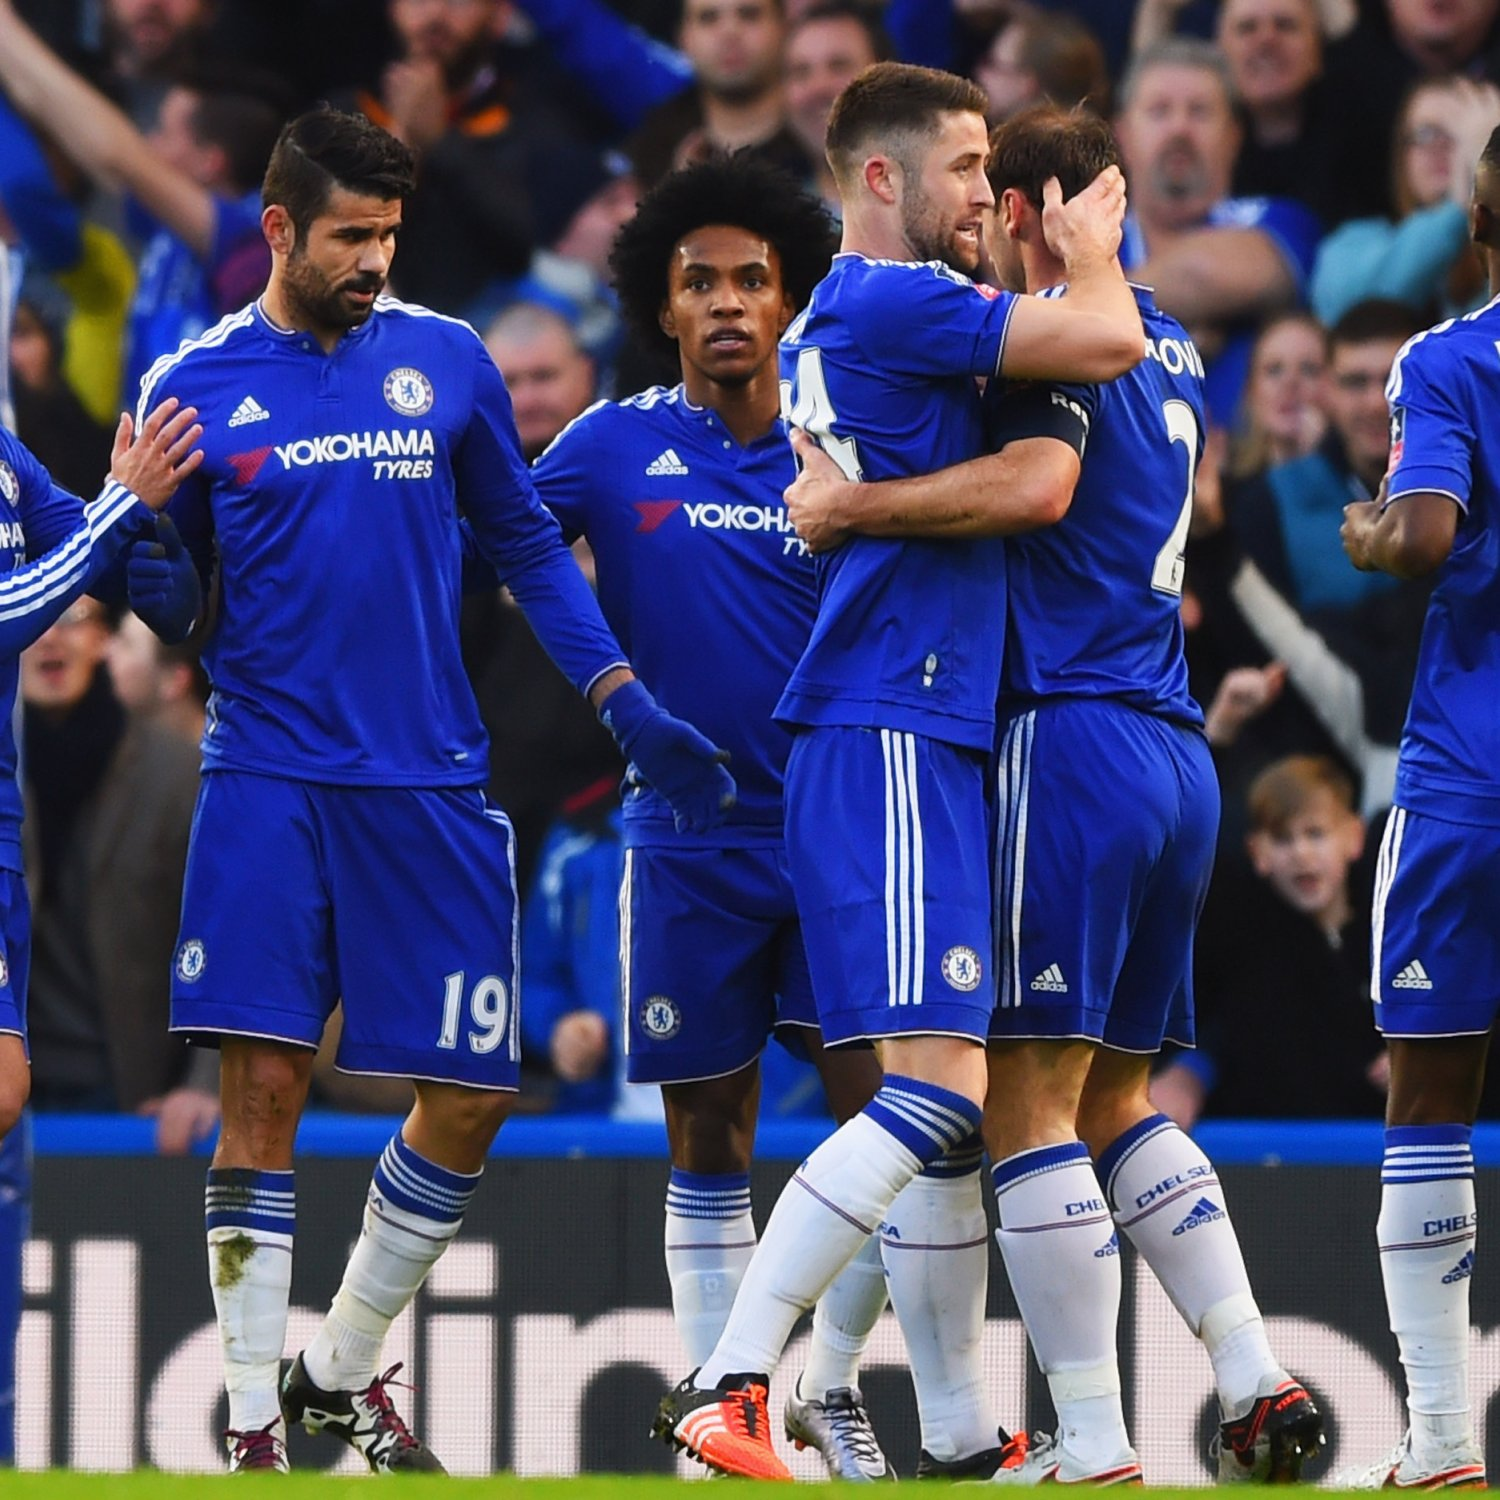 Chelsea Vs Tottenham Score Reaction From 2016 Premier: Chelsea Vs. Scunthorpe: Score, Reaction From 2016 FA Cup